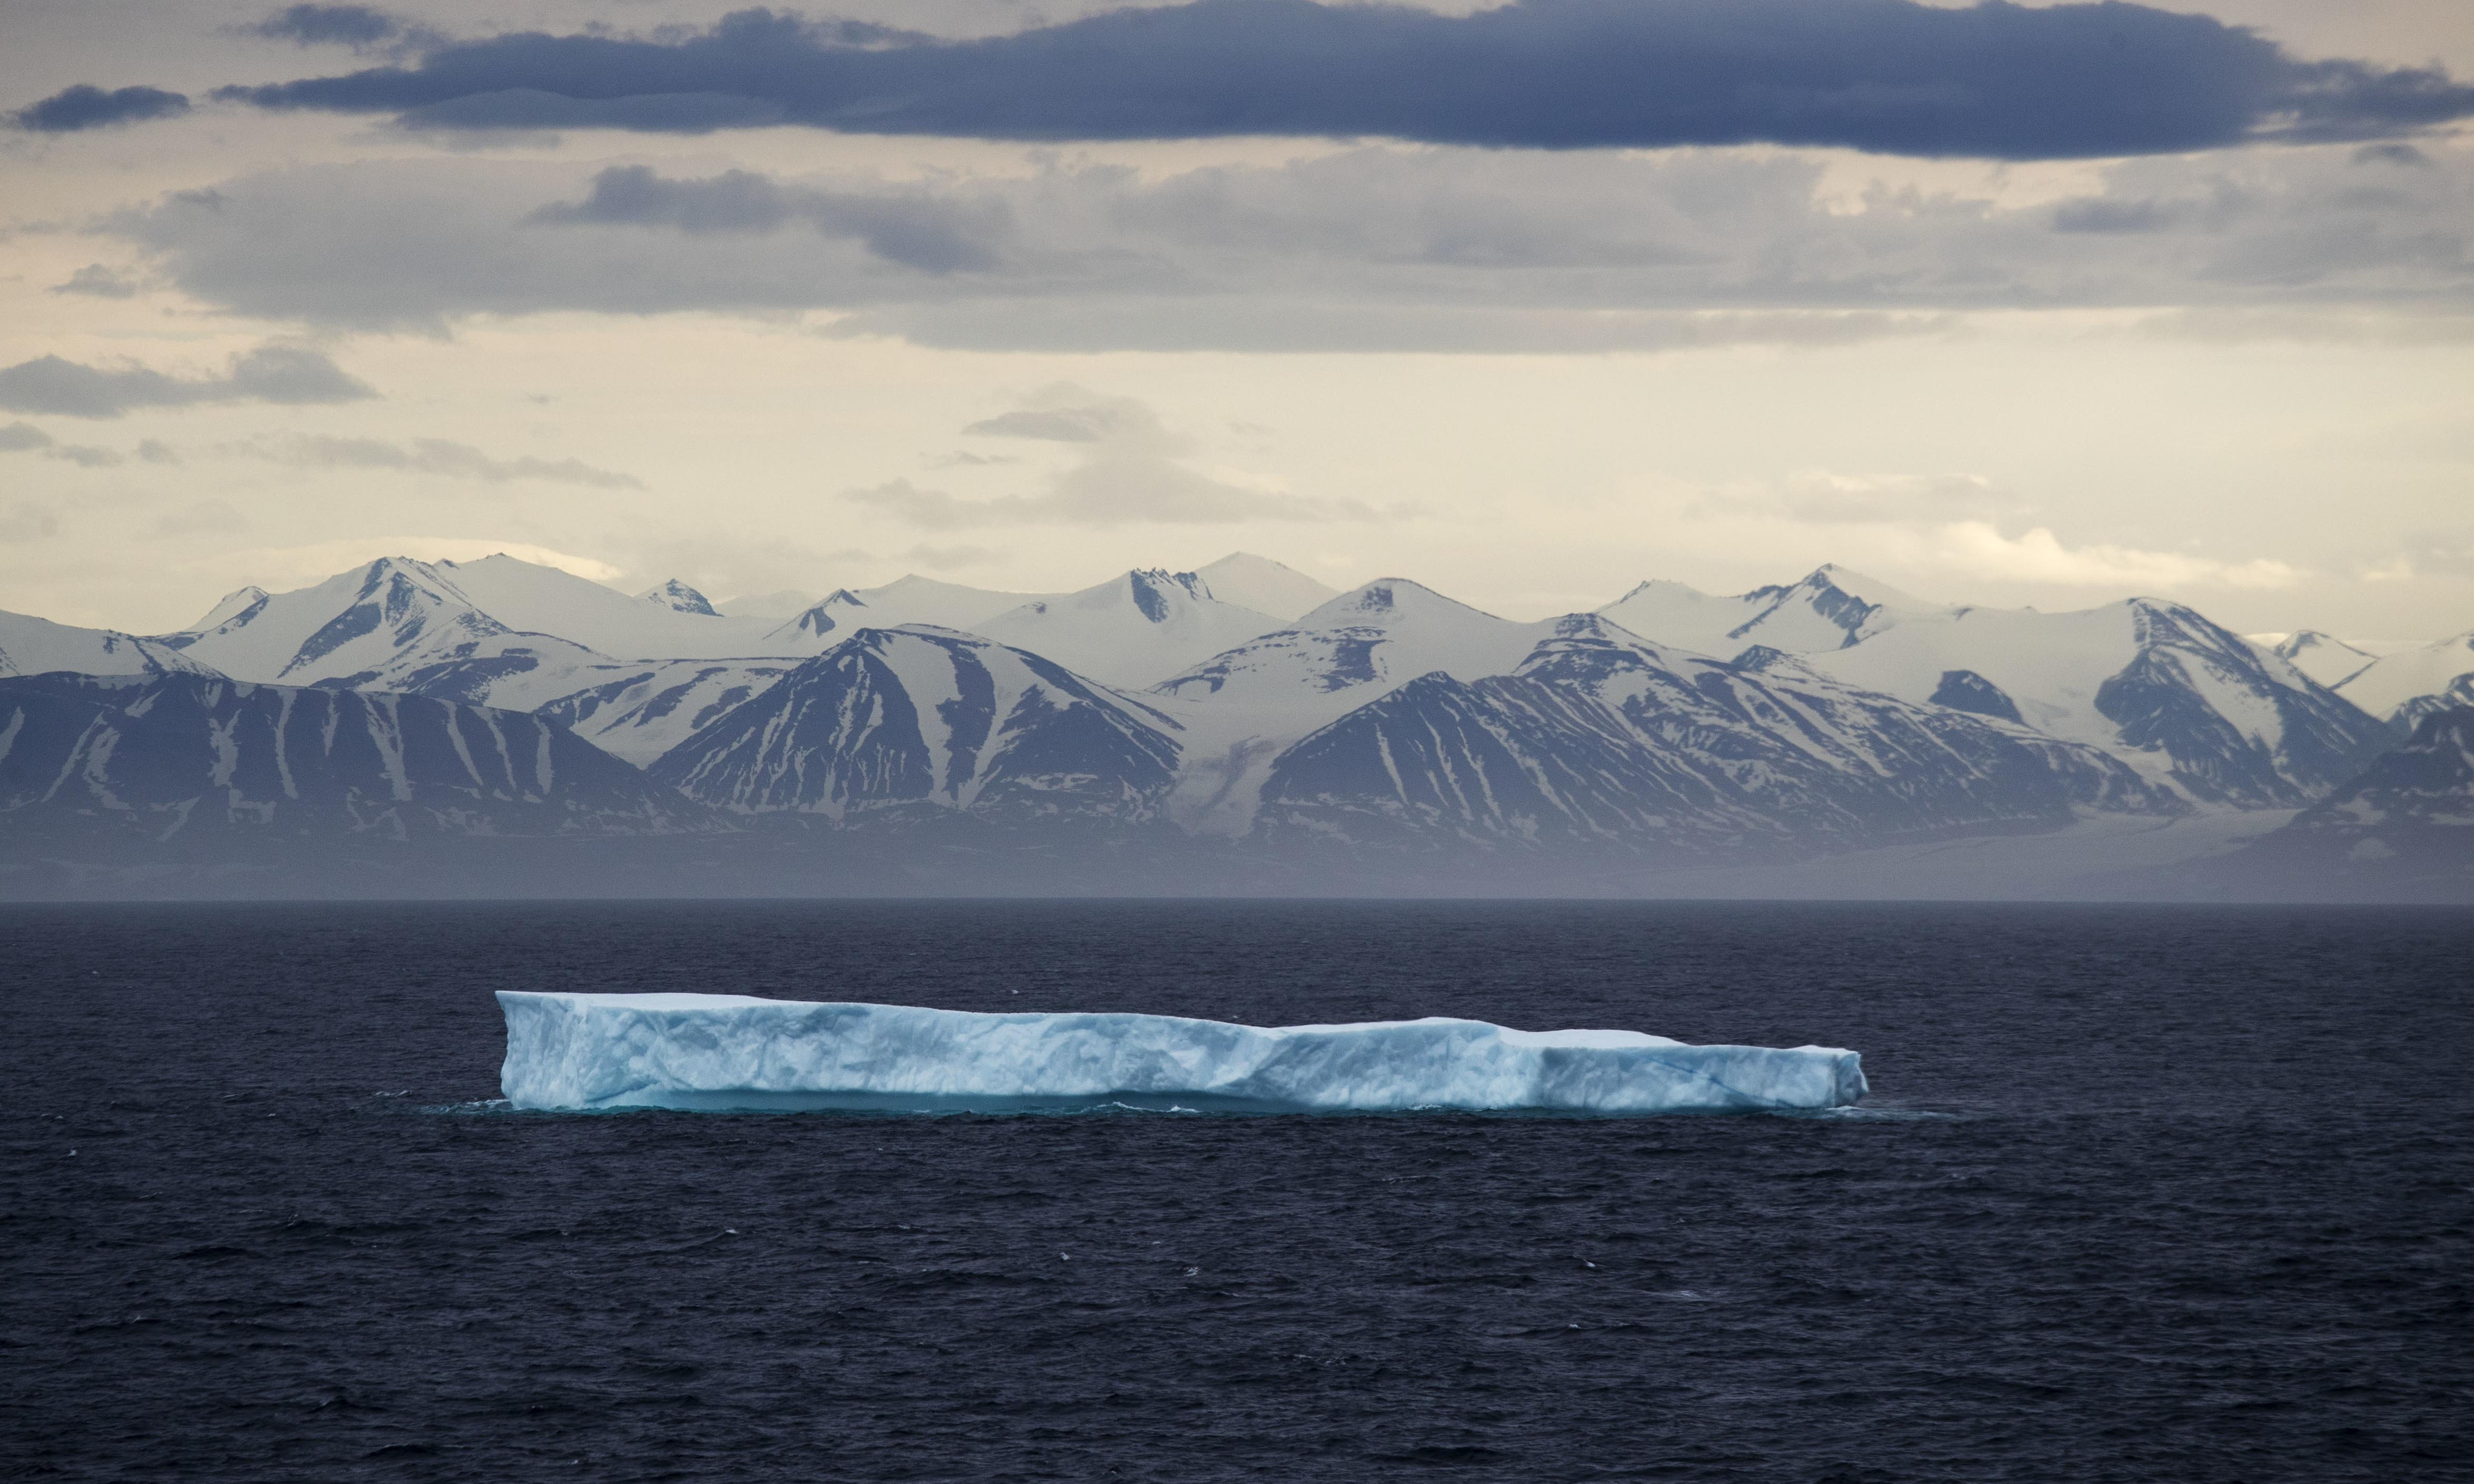 Canadian climate science faces crisis that may be felt globally, scientists warn